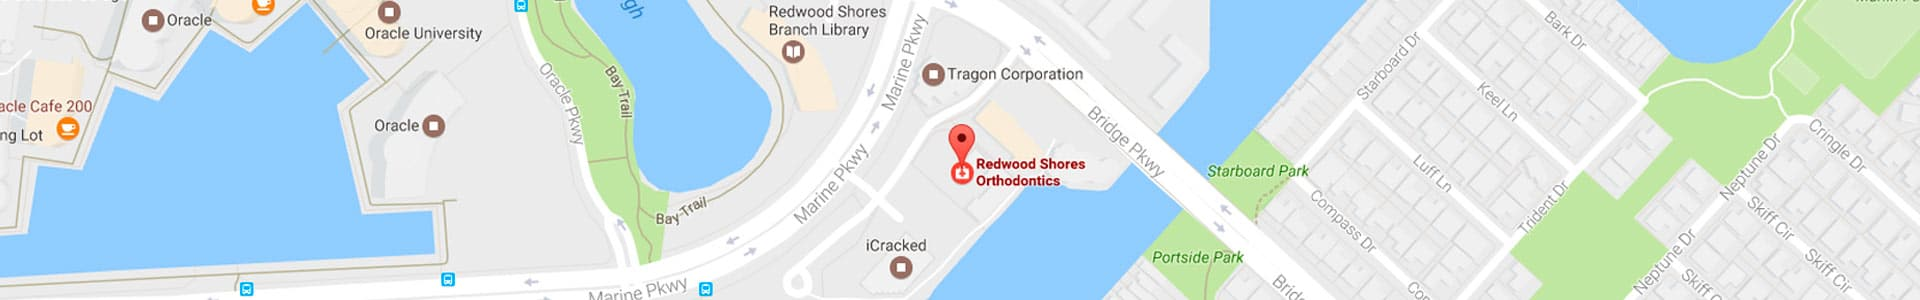 Location Redwood Shores Orthodontics Redwood City, CA